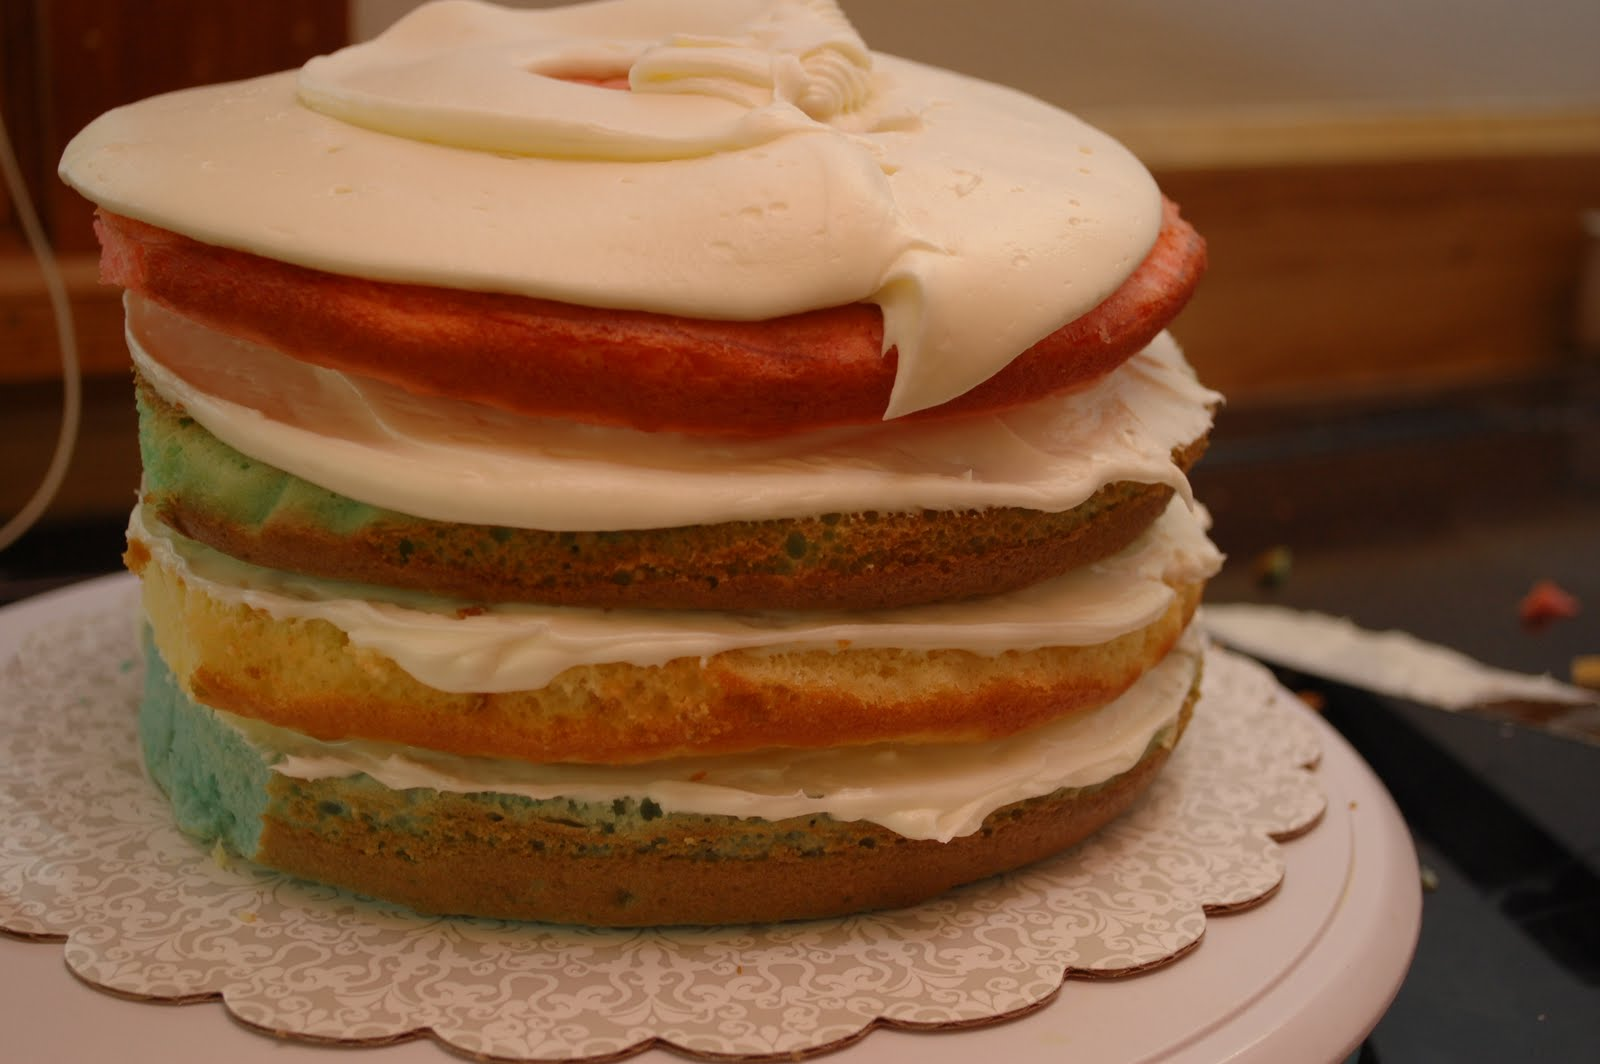 Every Pot and Pan: Easter Egg Layered Cake